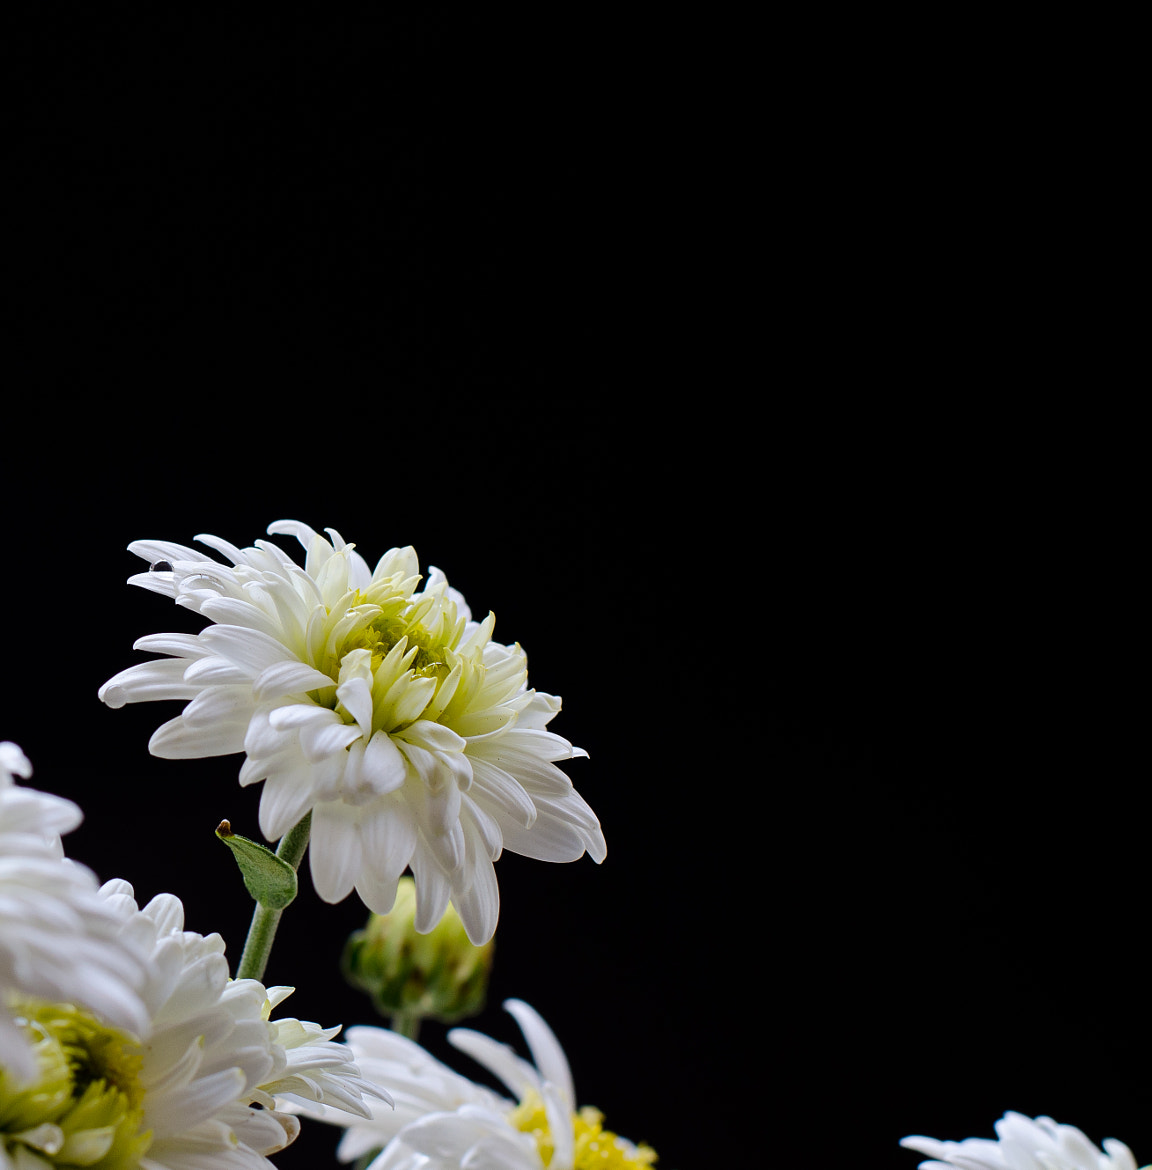 Photograph White Flower by Pawan Gupta on 500px